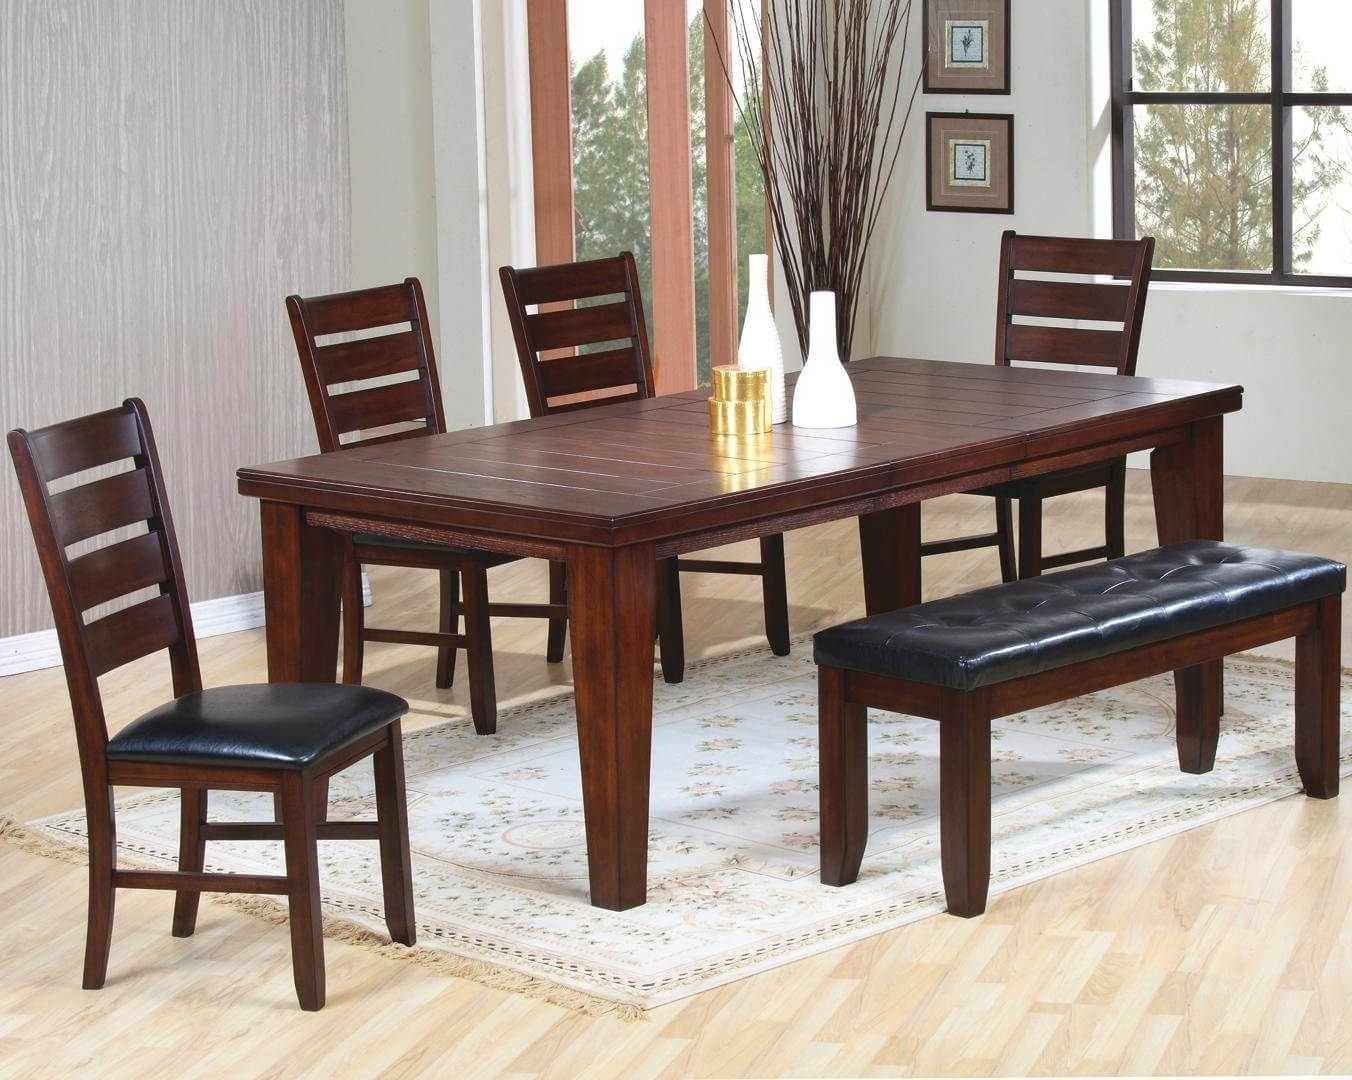 Well Known 26 Dining Room Sets (Big And Small) With Bench Seating (2018) Pertaining To Small Dining Tables And Bench Sets (View 24 of 25)